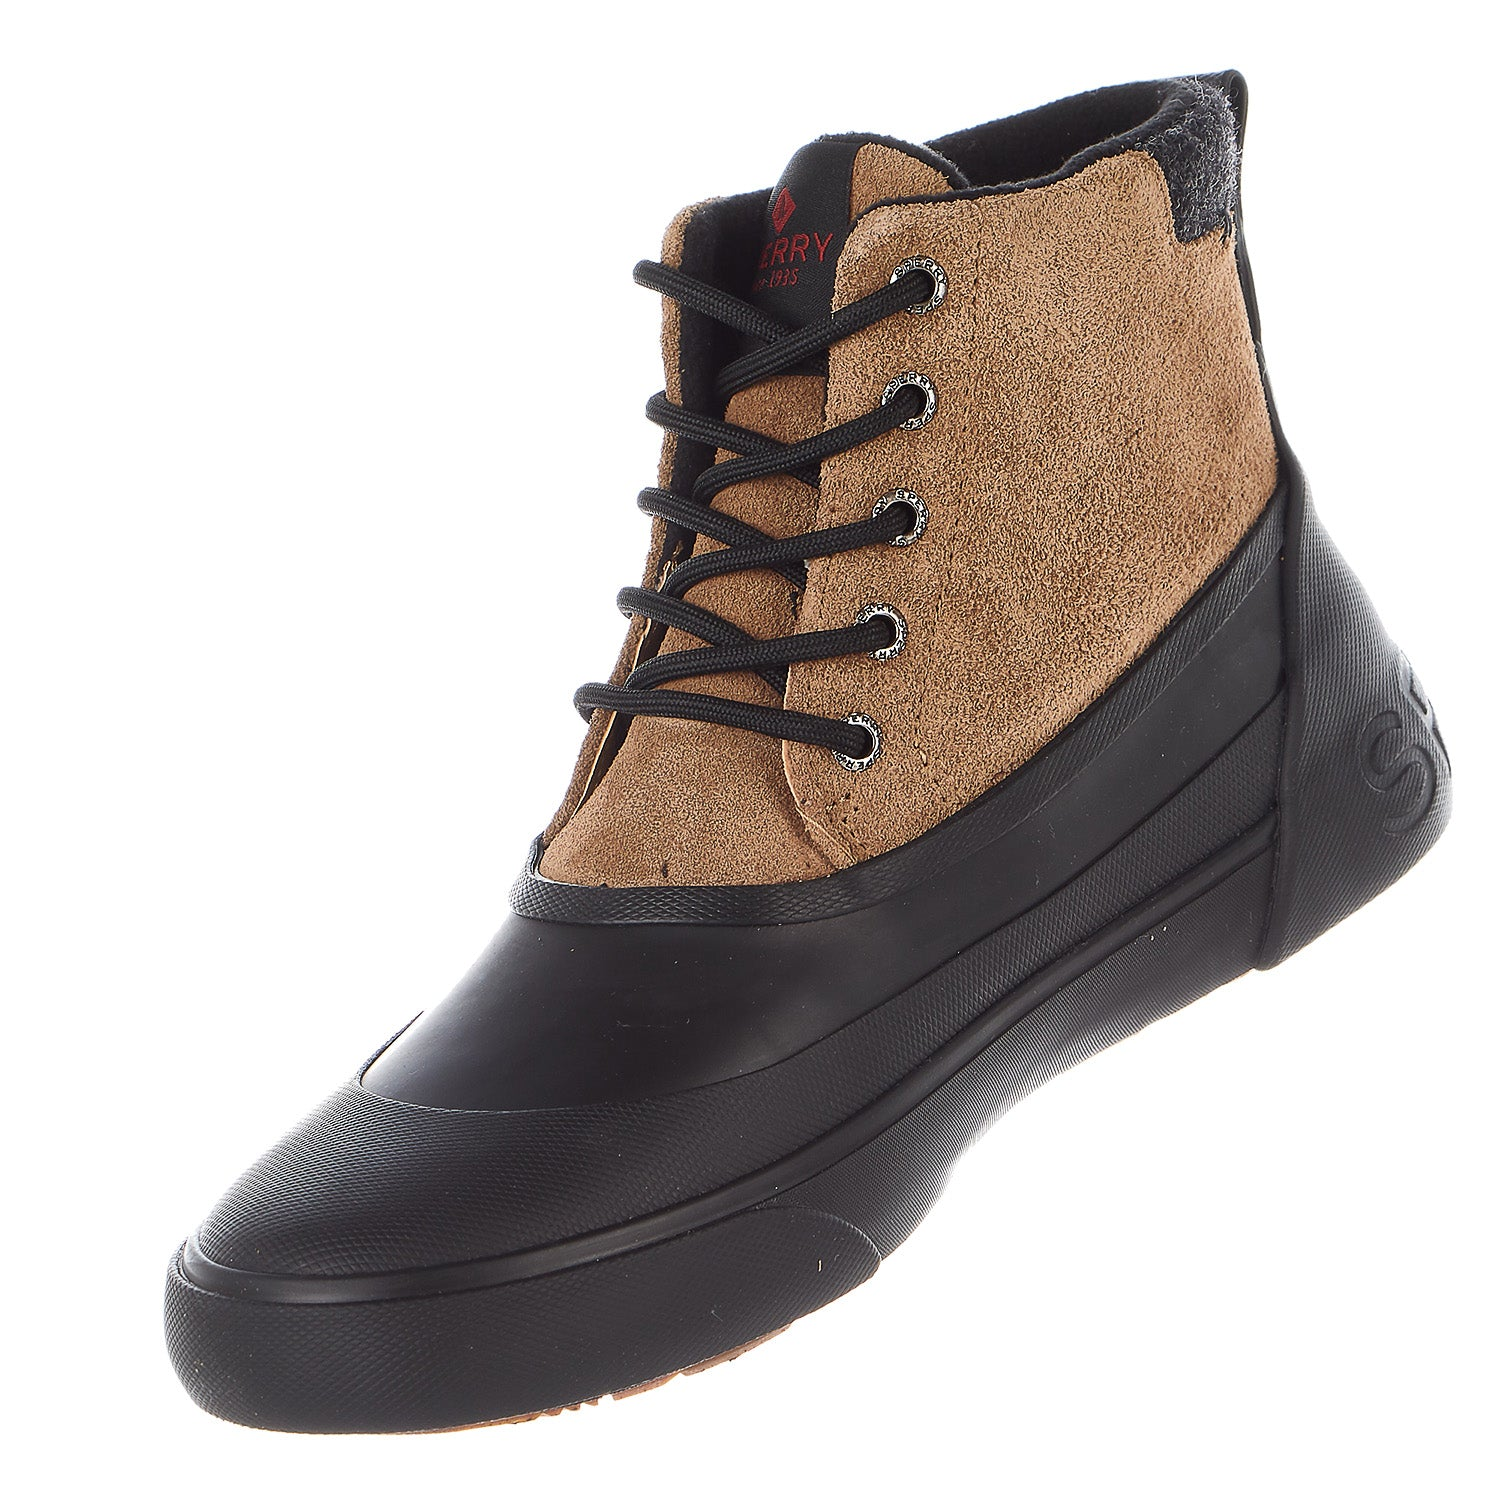 Sperry Top-Sider Сutwater Deck Boot